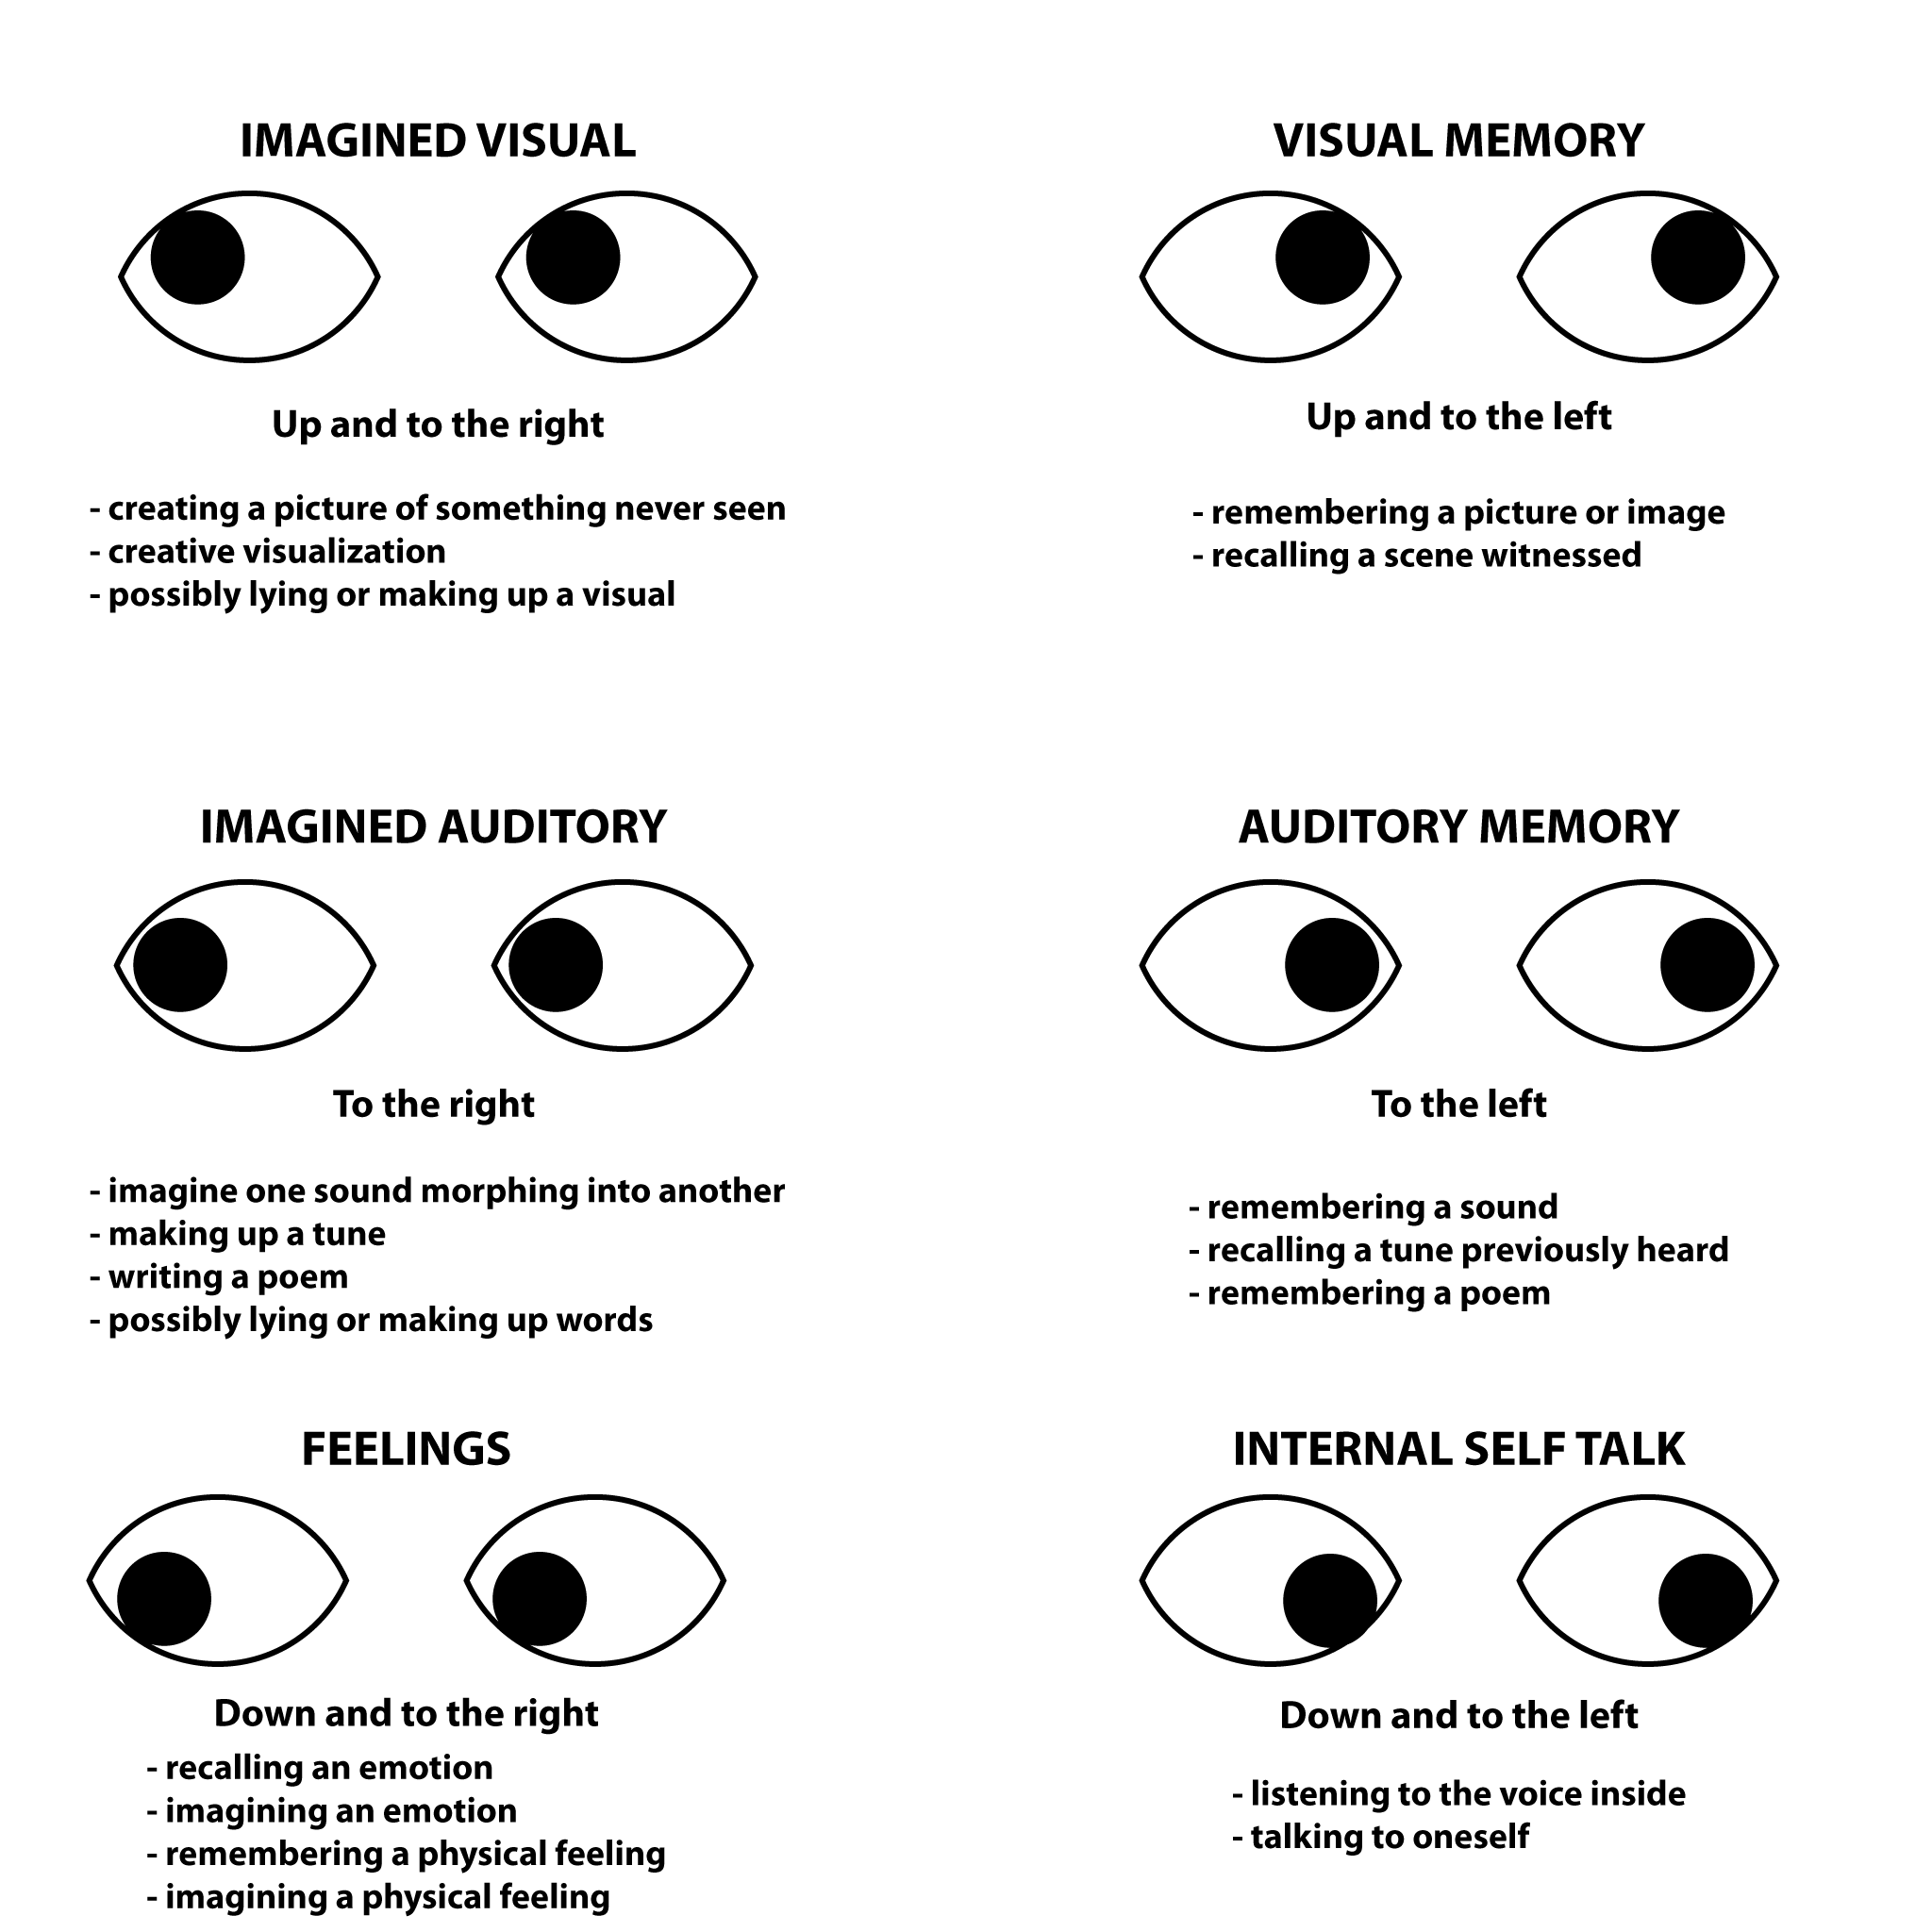 nlp visual eye cues